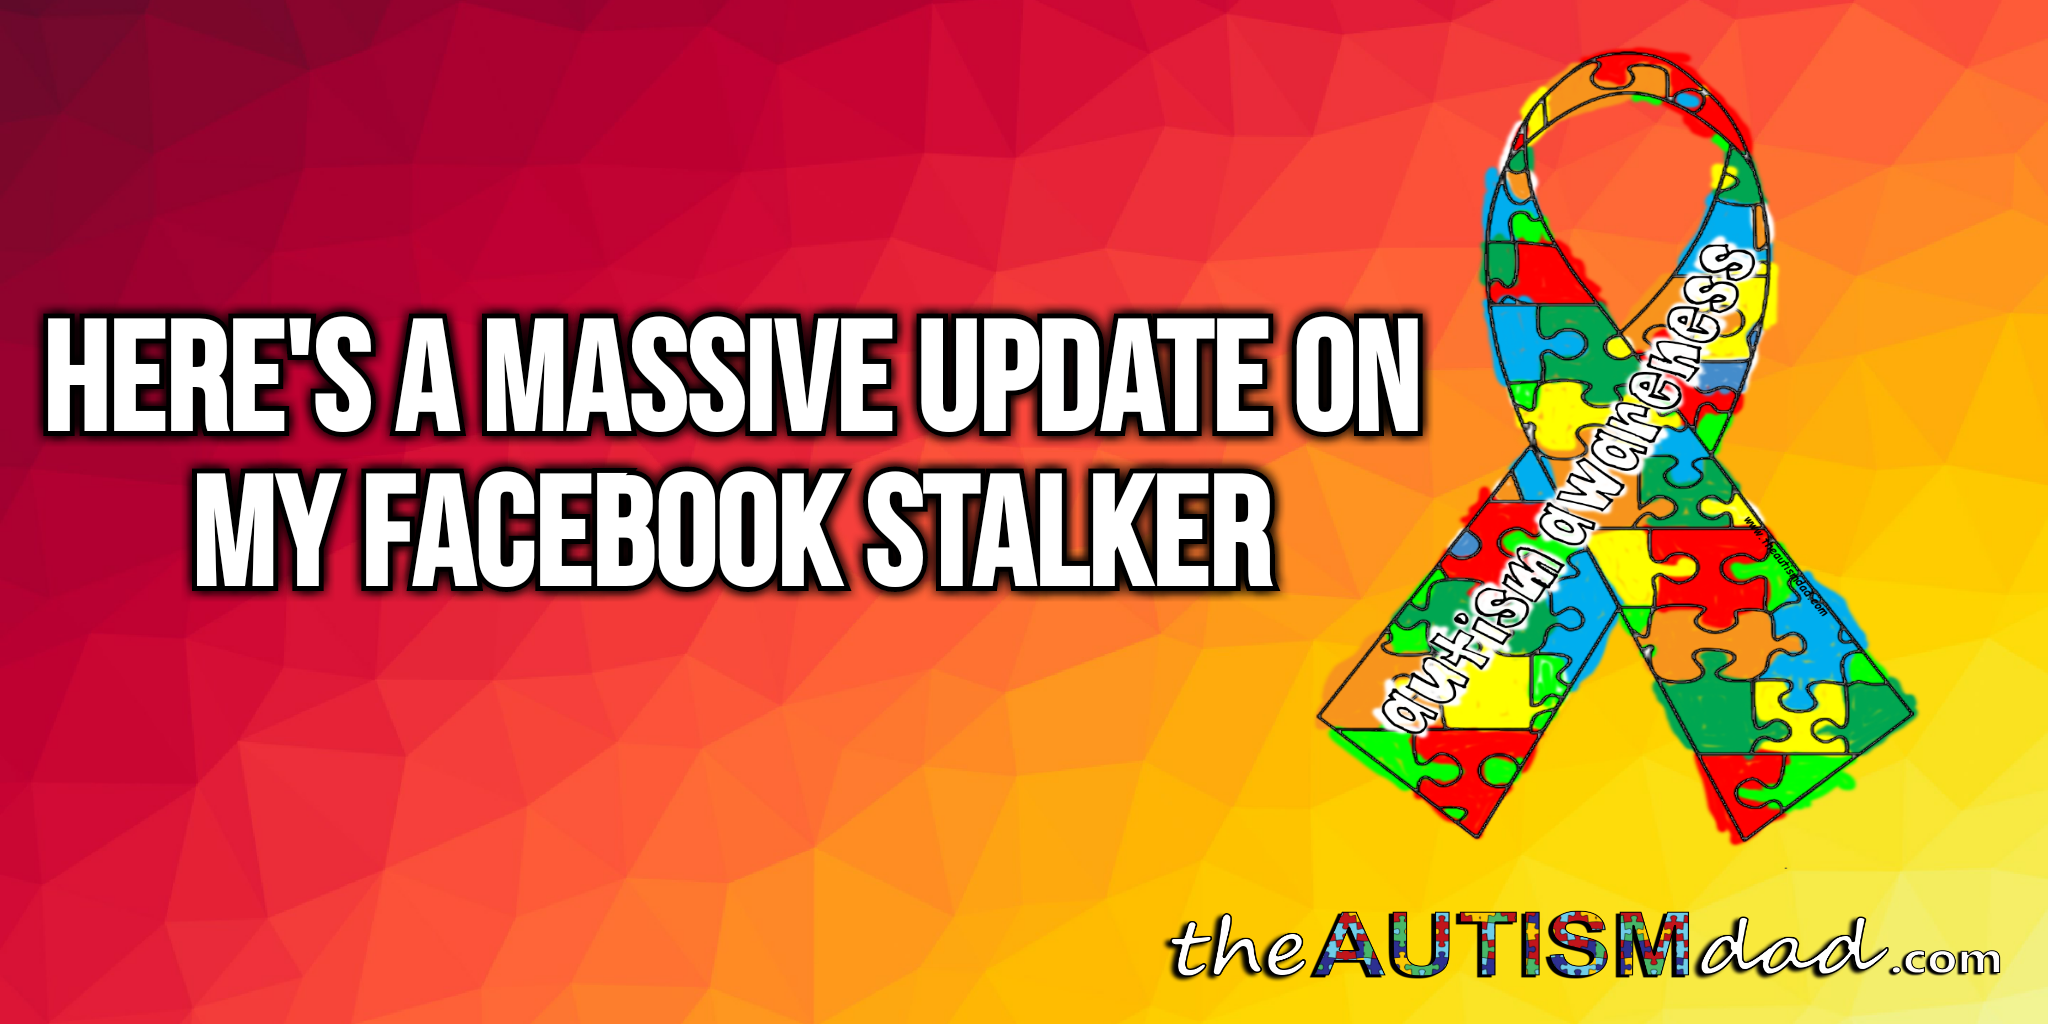 Here's a massive update on my Facebook stalker